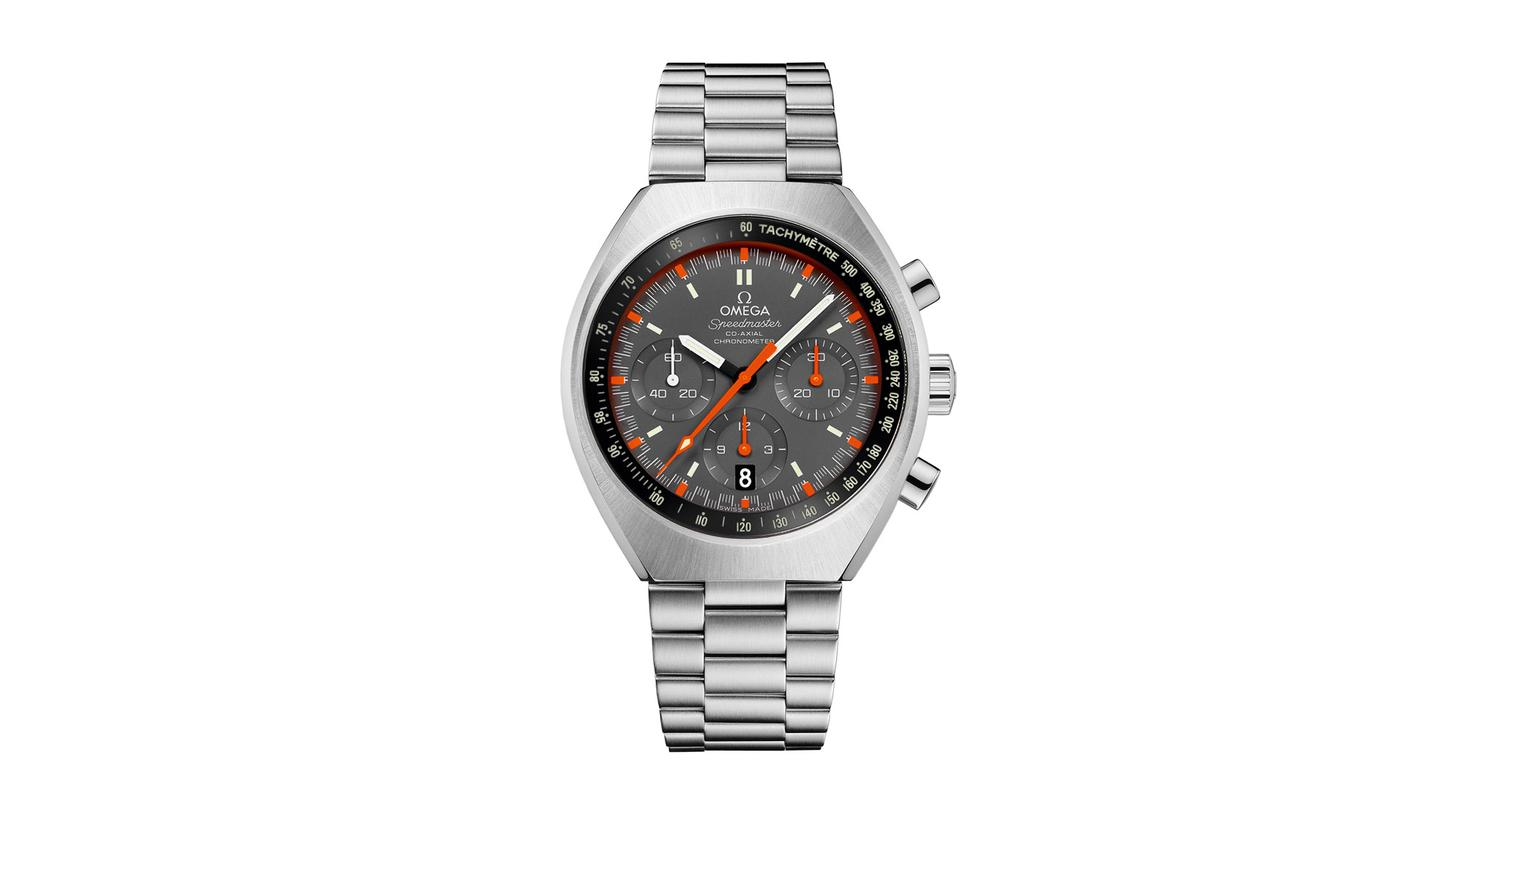 Omega-Speedmaster-Mark-II-Zoom